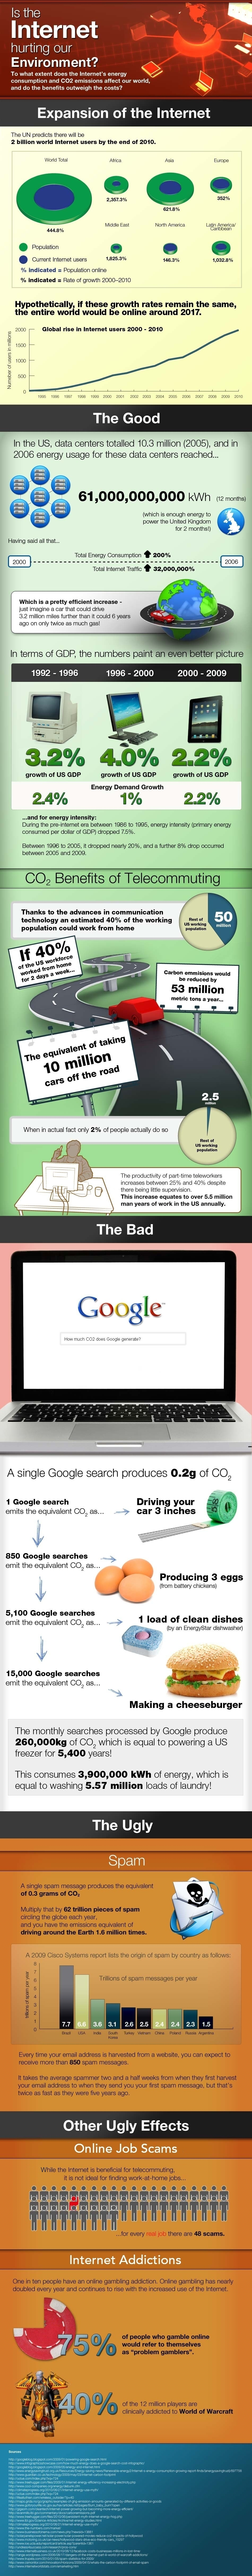 The Internet's Impact on the Environment Infograhic: Is the Internet Damaging Our Planet?